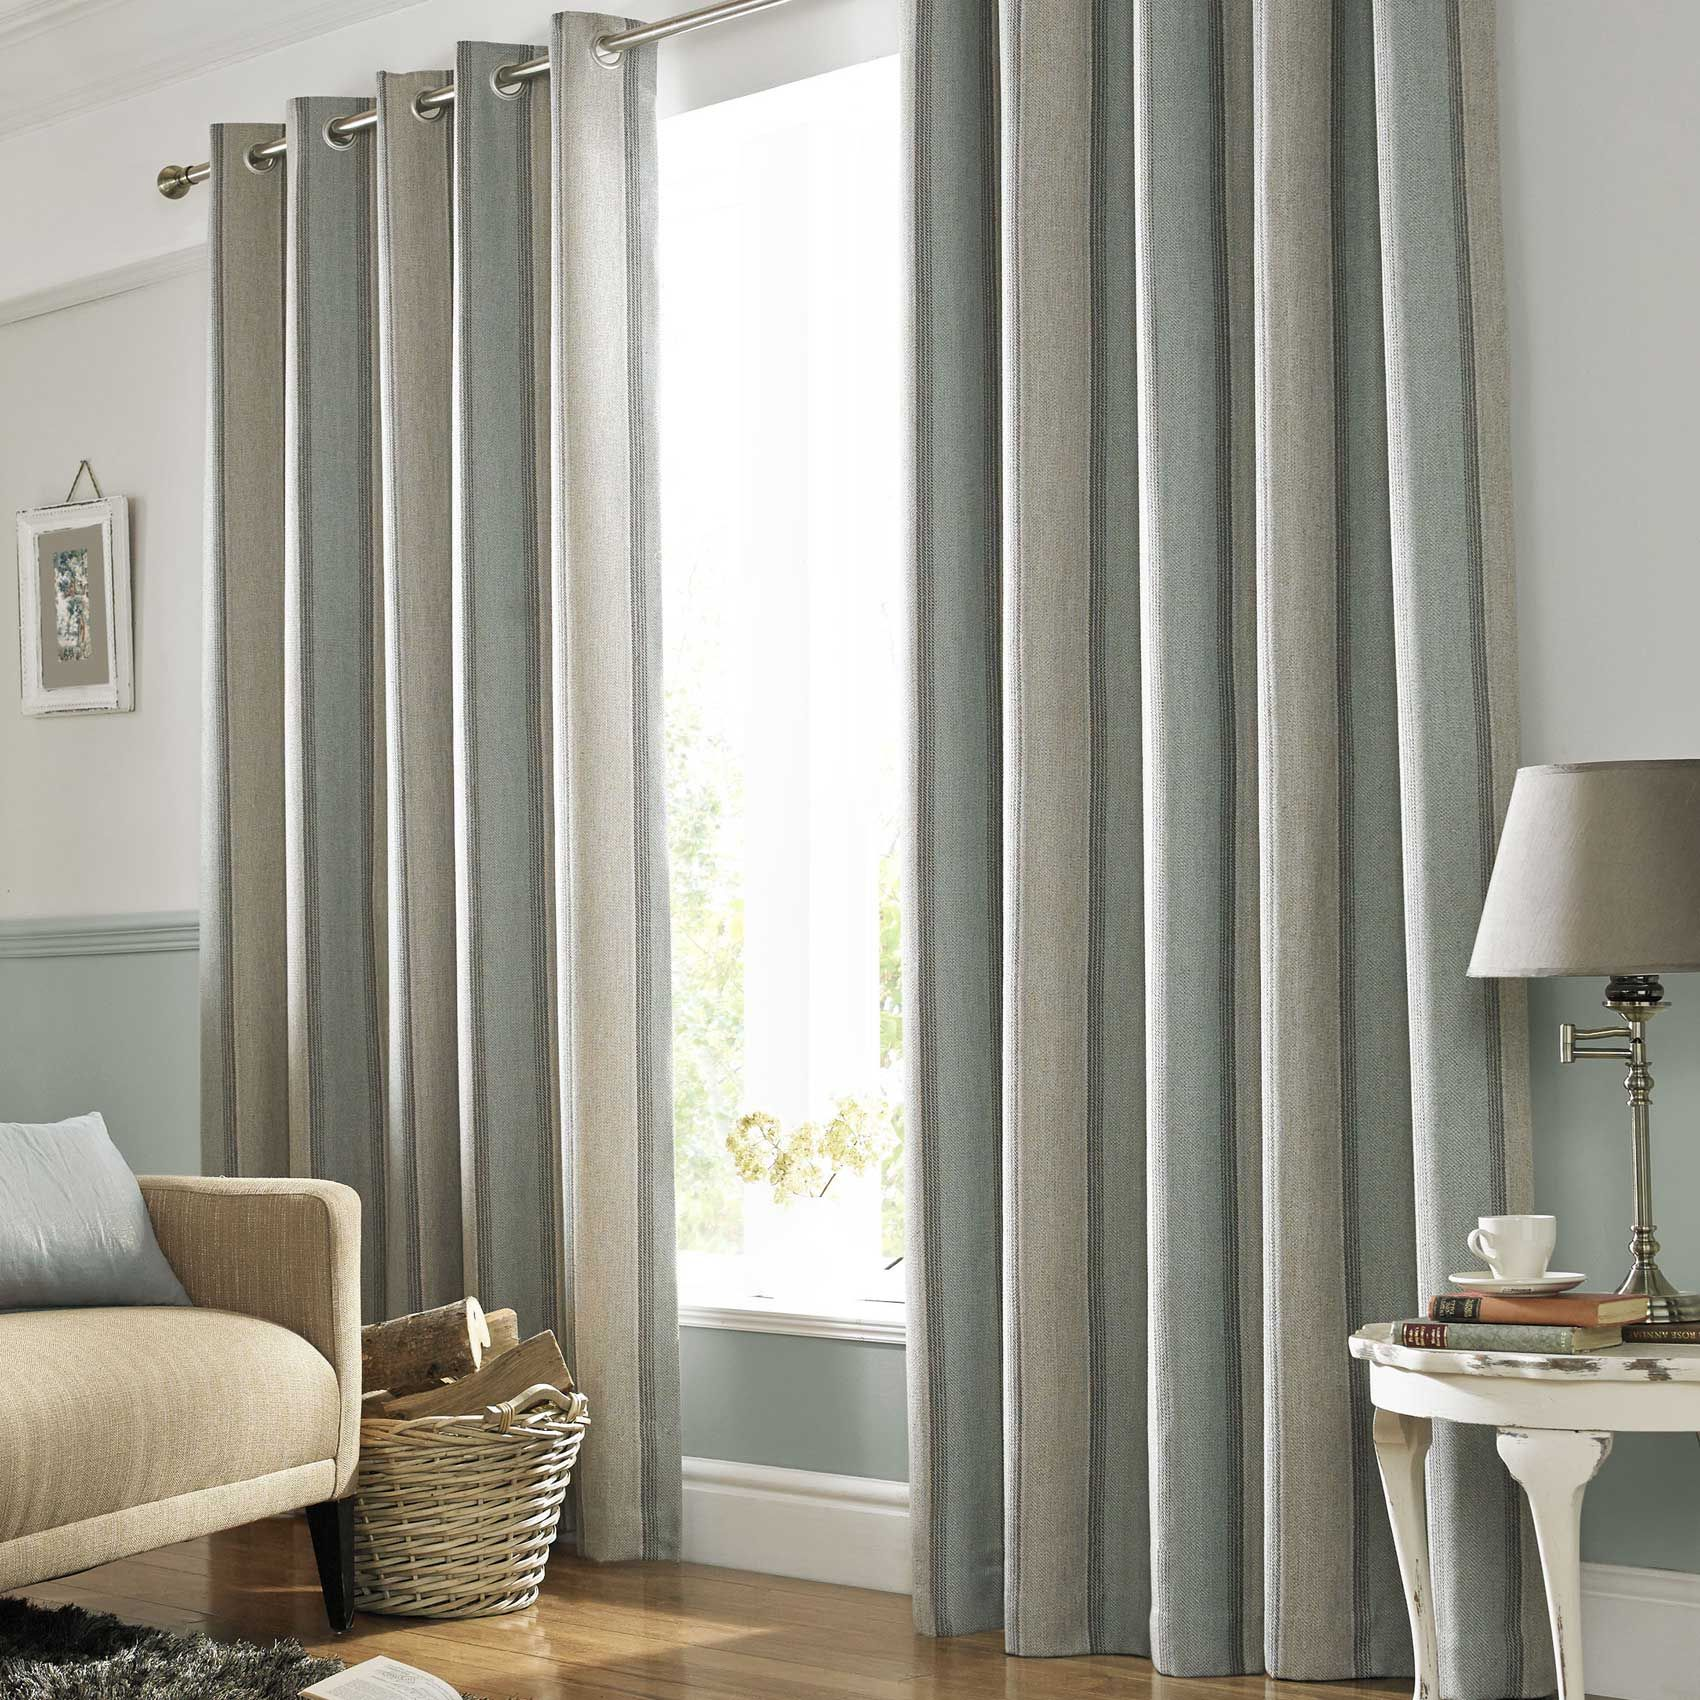 Ashley Wilde Downton Lined Eyelet Curtains